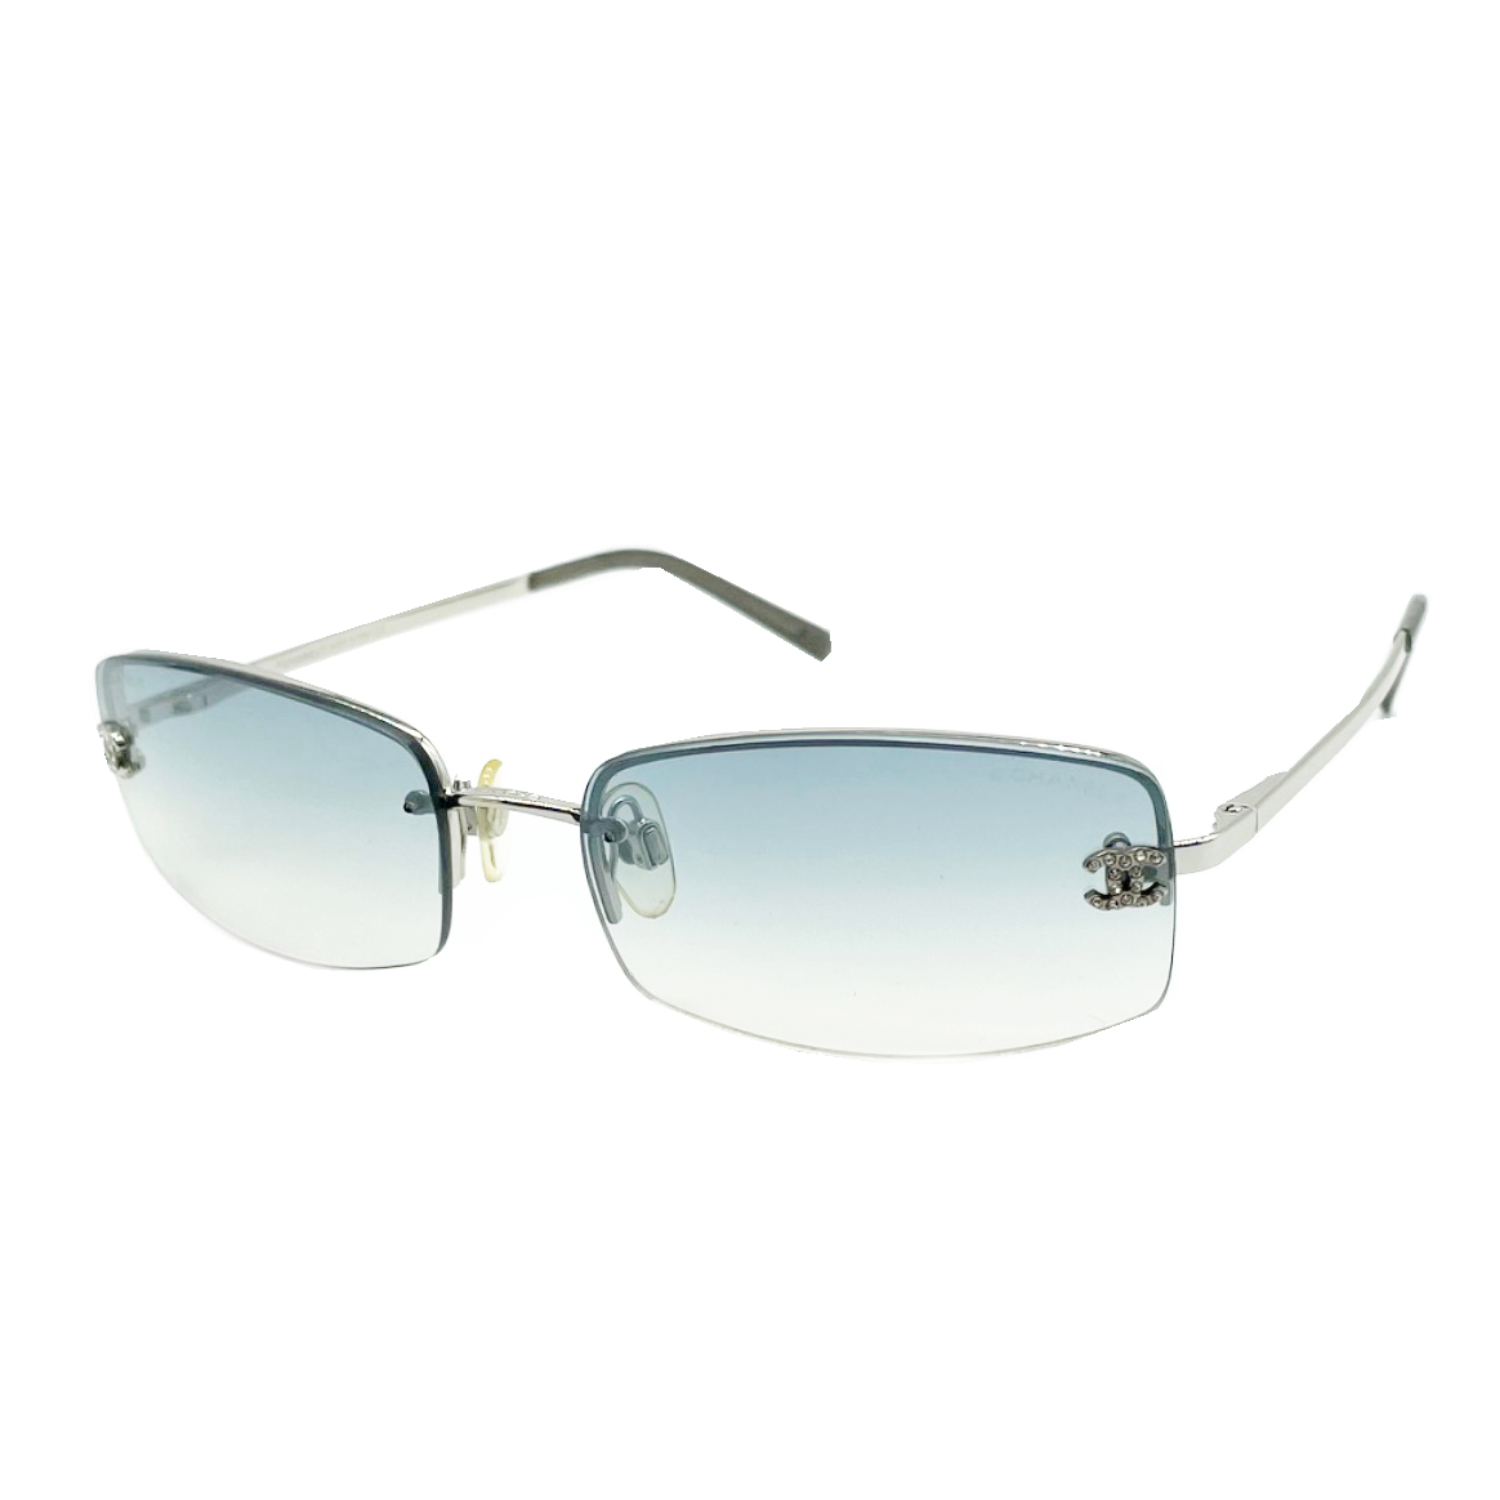 Vintage Chanel Diamante Ombre Tint Sunglasses in Blue and Silver   NITRYL